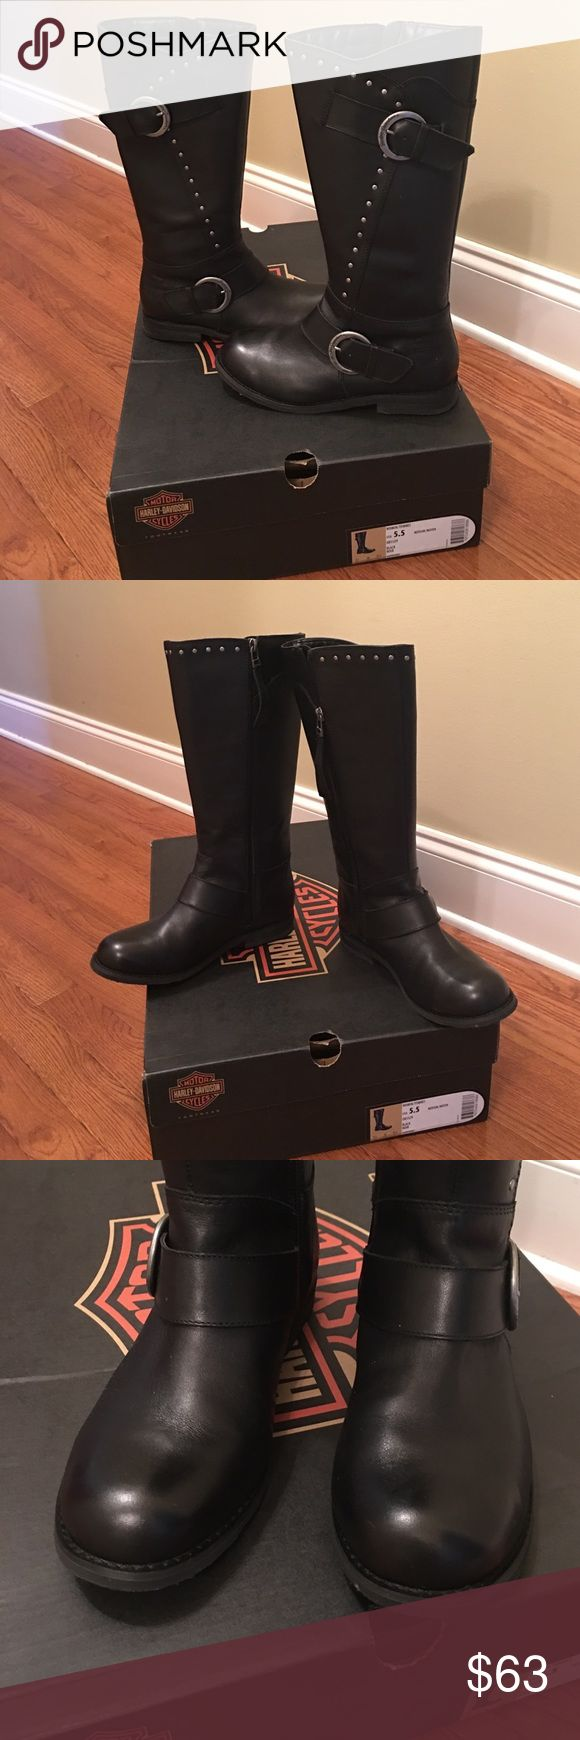 Women's Harley Davidson Boots worn once! Black Harley Davidson boots for women with stud detail and buckles. Worn once about 45 minutes. Size 5.5. Excellent deal! Harley-Davidson Shoes Combat & Moto Boots